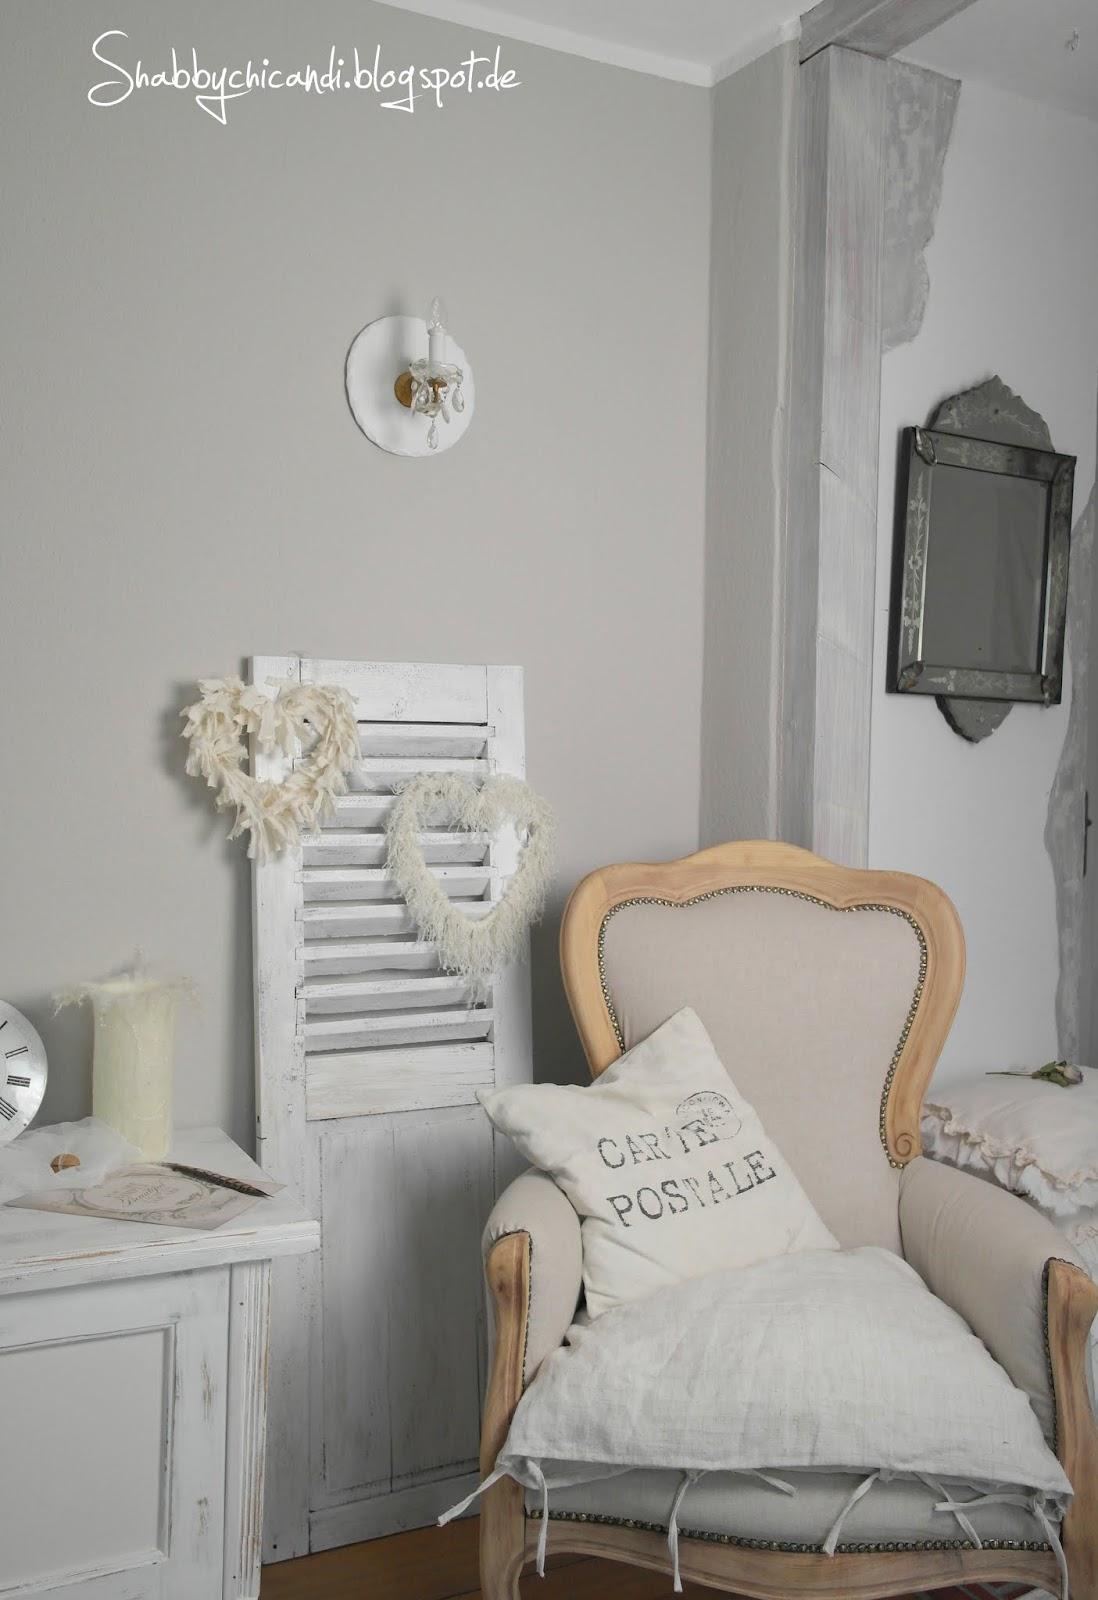 shabby chic and i shabby chic diy und deko. Black Bedroom Furniture Sets. Home Design Ideas